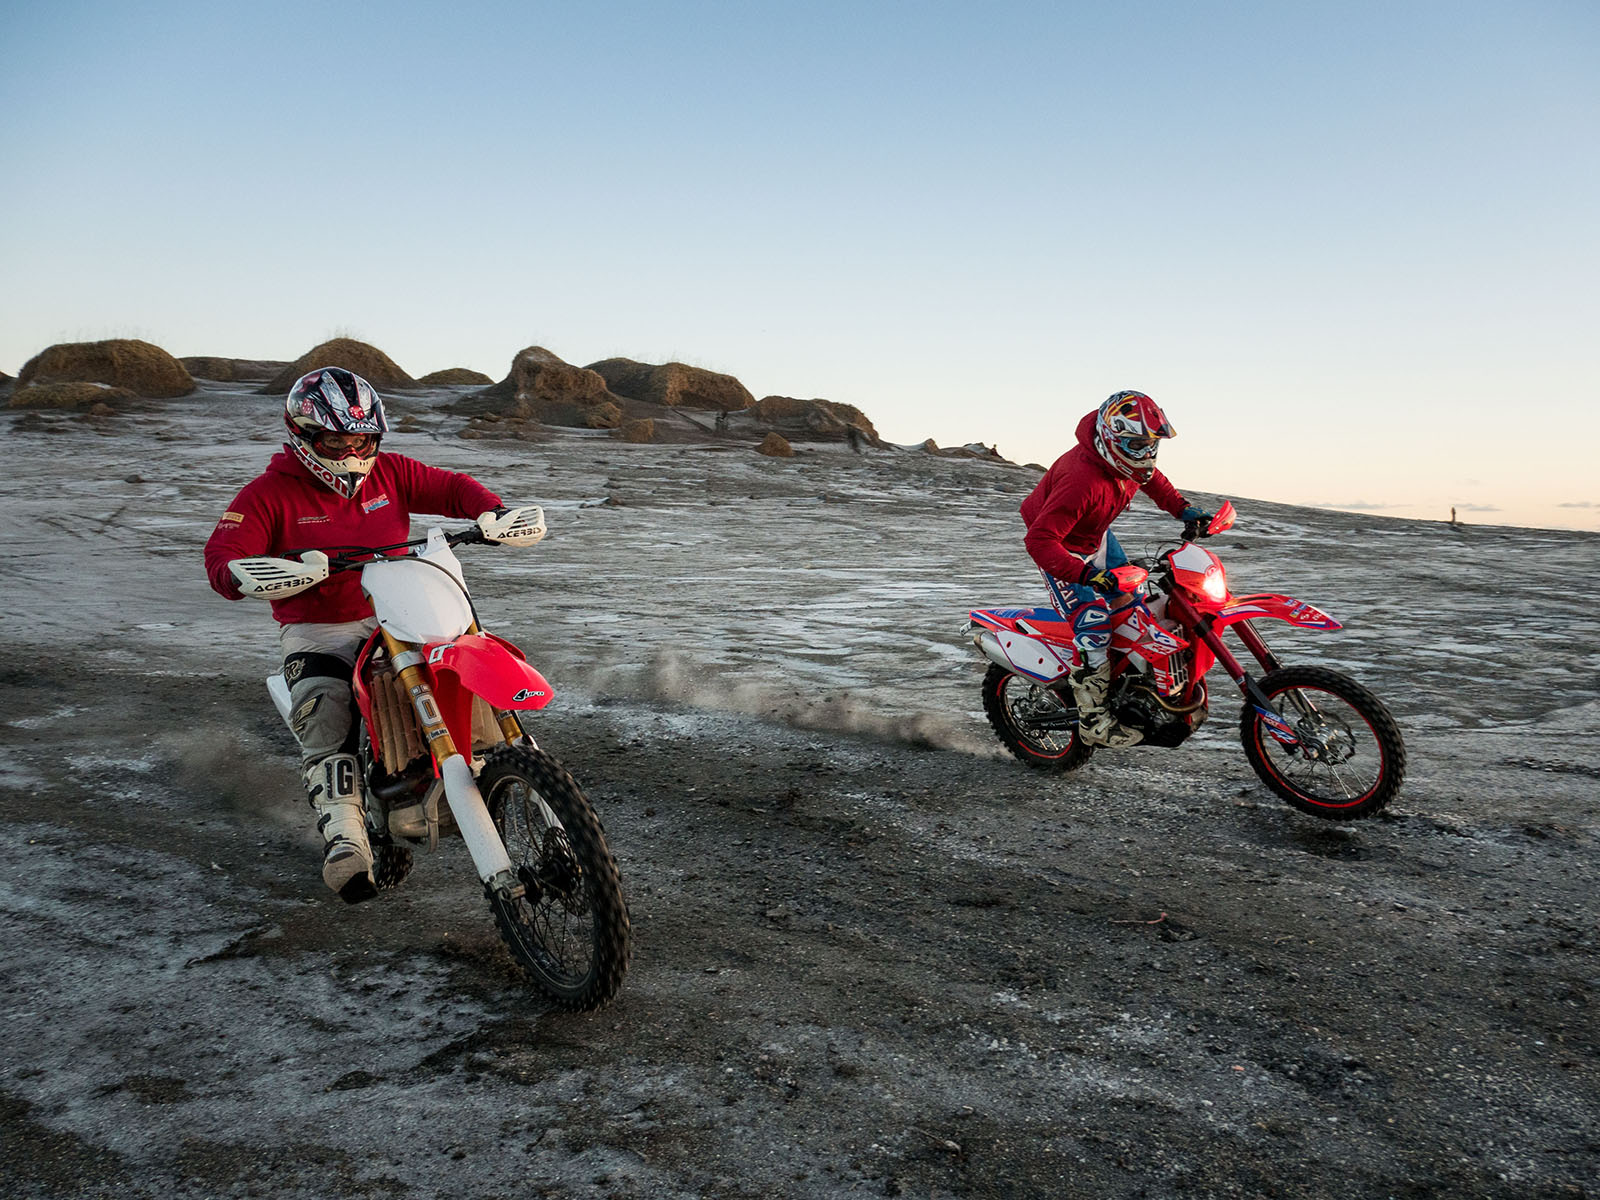 Motocross and endurance riders and husband and wife team Johannes and Gudny